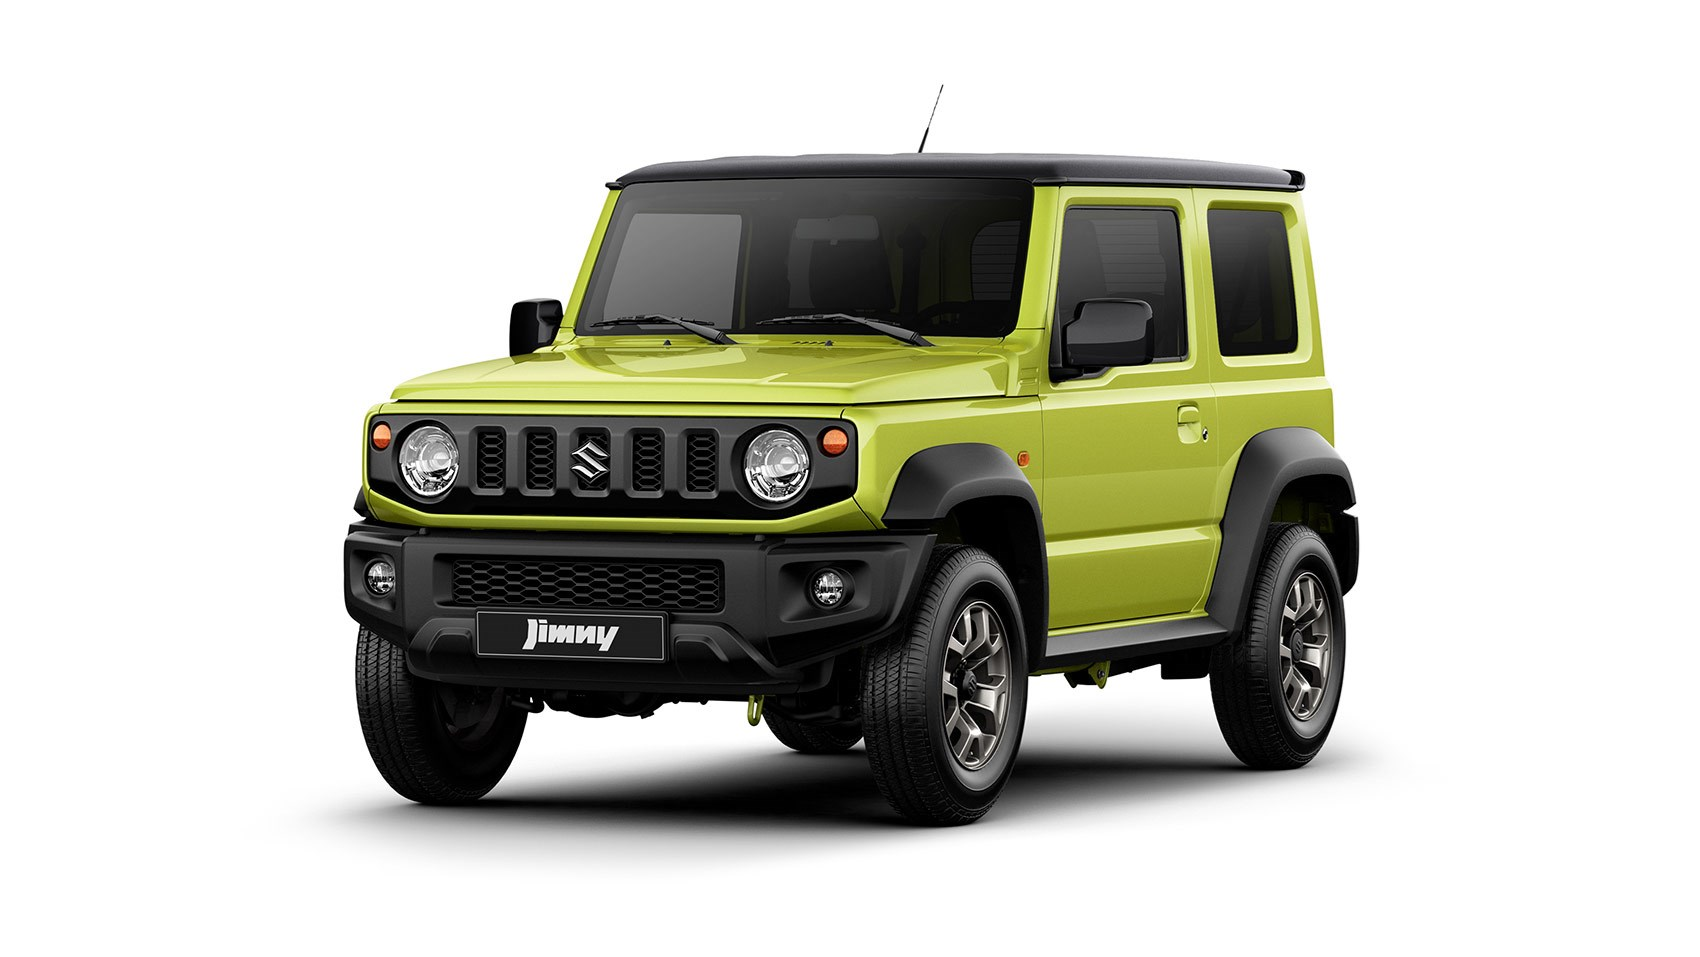 suzuki jimny 2018 news pictures prices specs car magazine. Black Bedroom Furniture Sets. Home Design Ideas